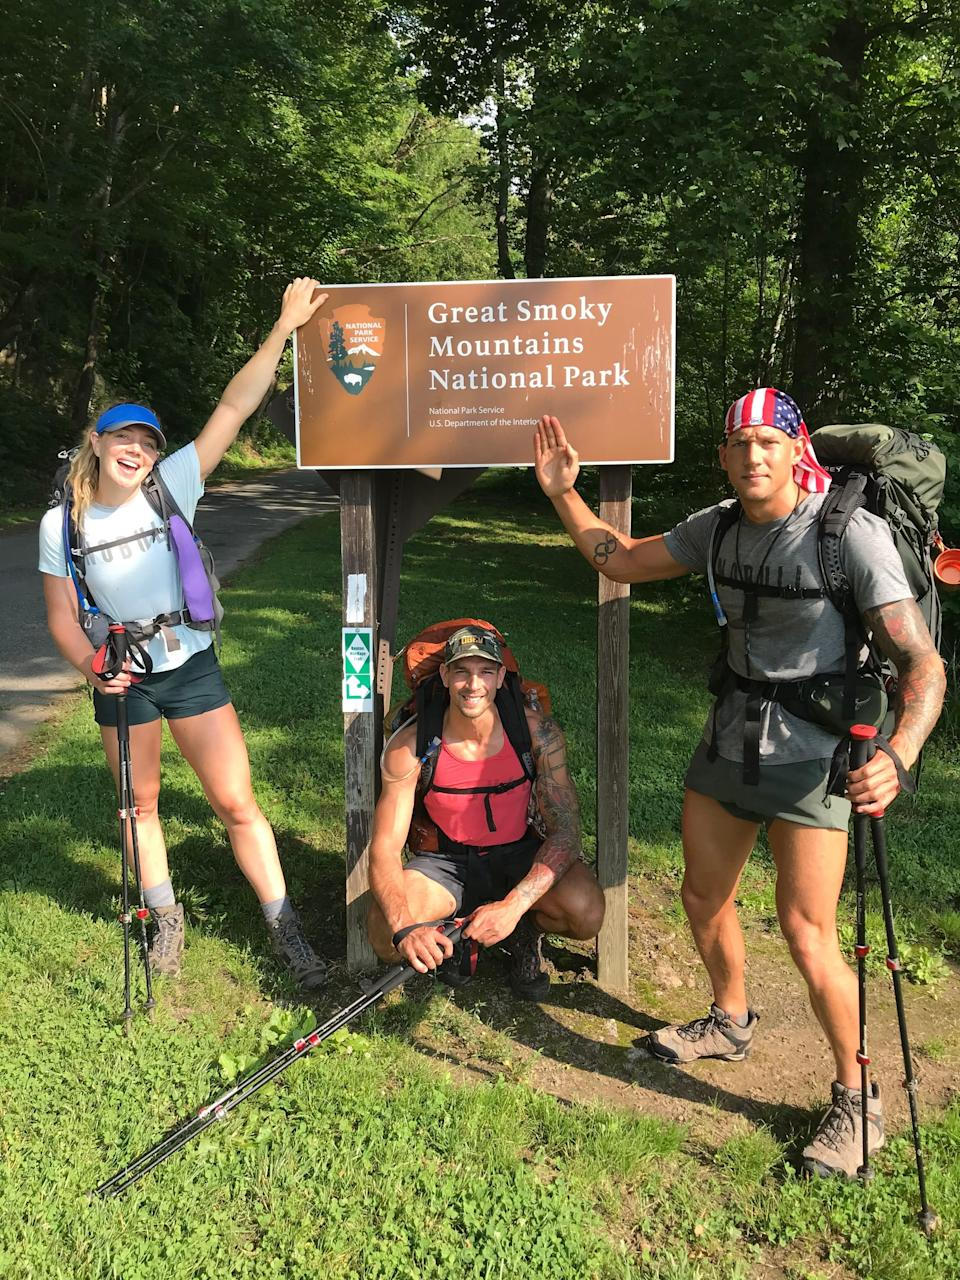 Olympic swimmer Caeleb Dressel took a hiking trip with his family during the pandemic, something he usually isn't able to do during his season. Here he's shown with siblings Kaitlyn and Tyler.